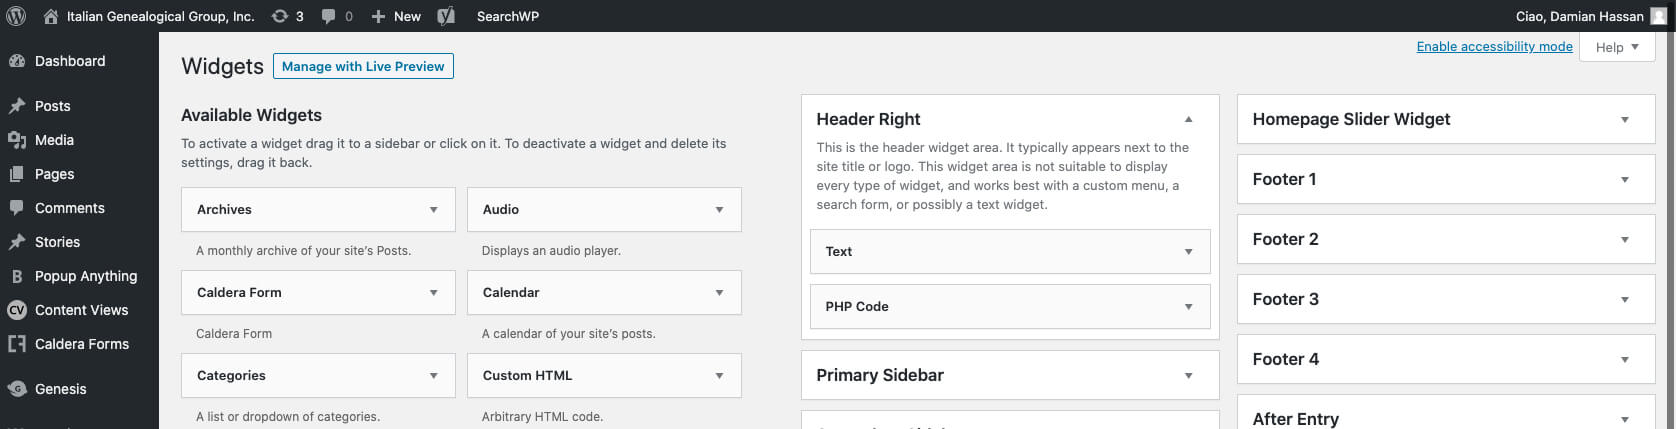 The WordPress Widgets page